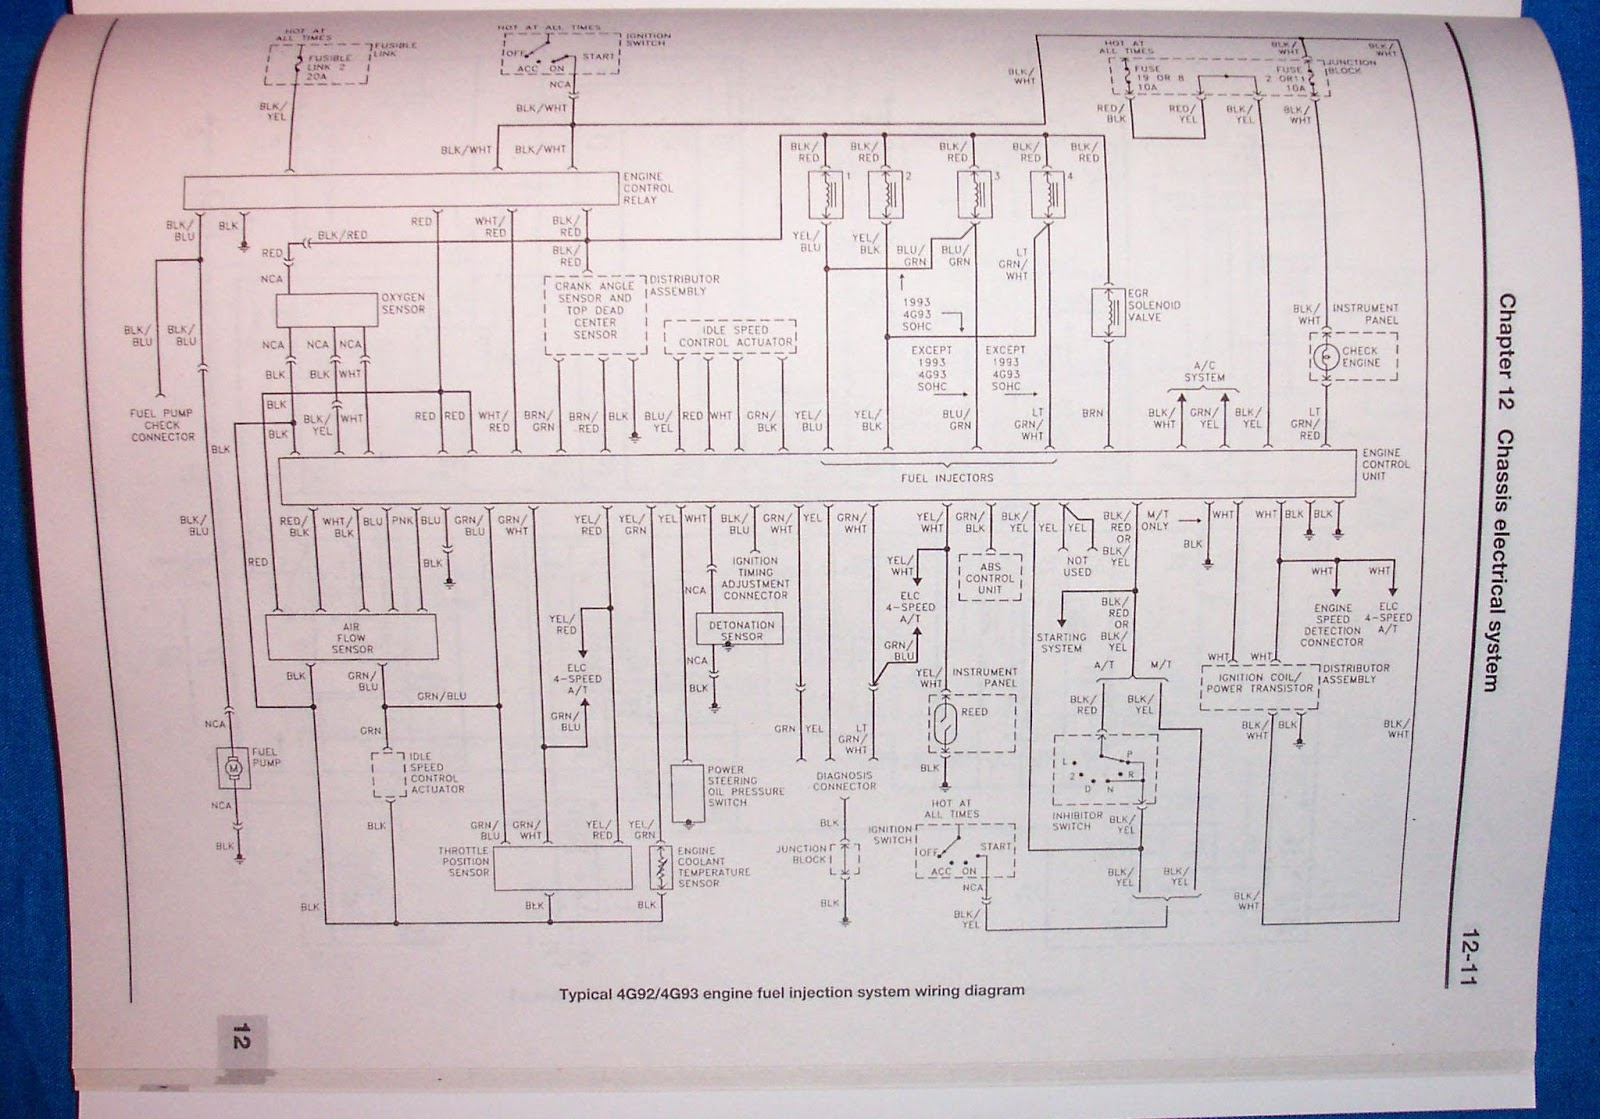 medium resolution of electrical wiring diagram for 4g9x